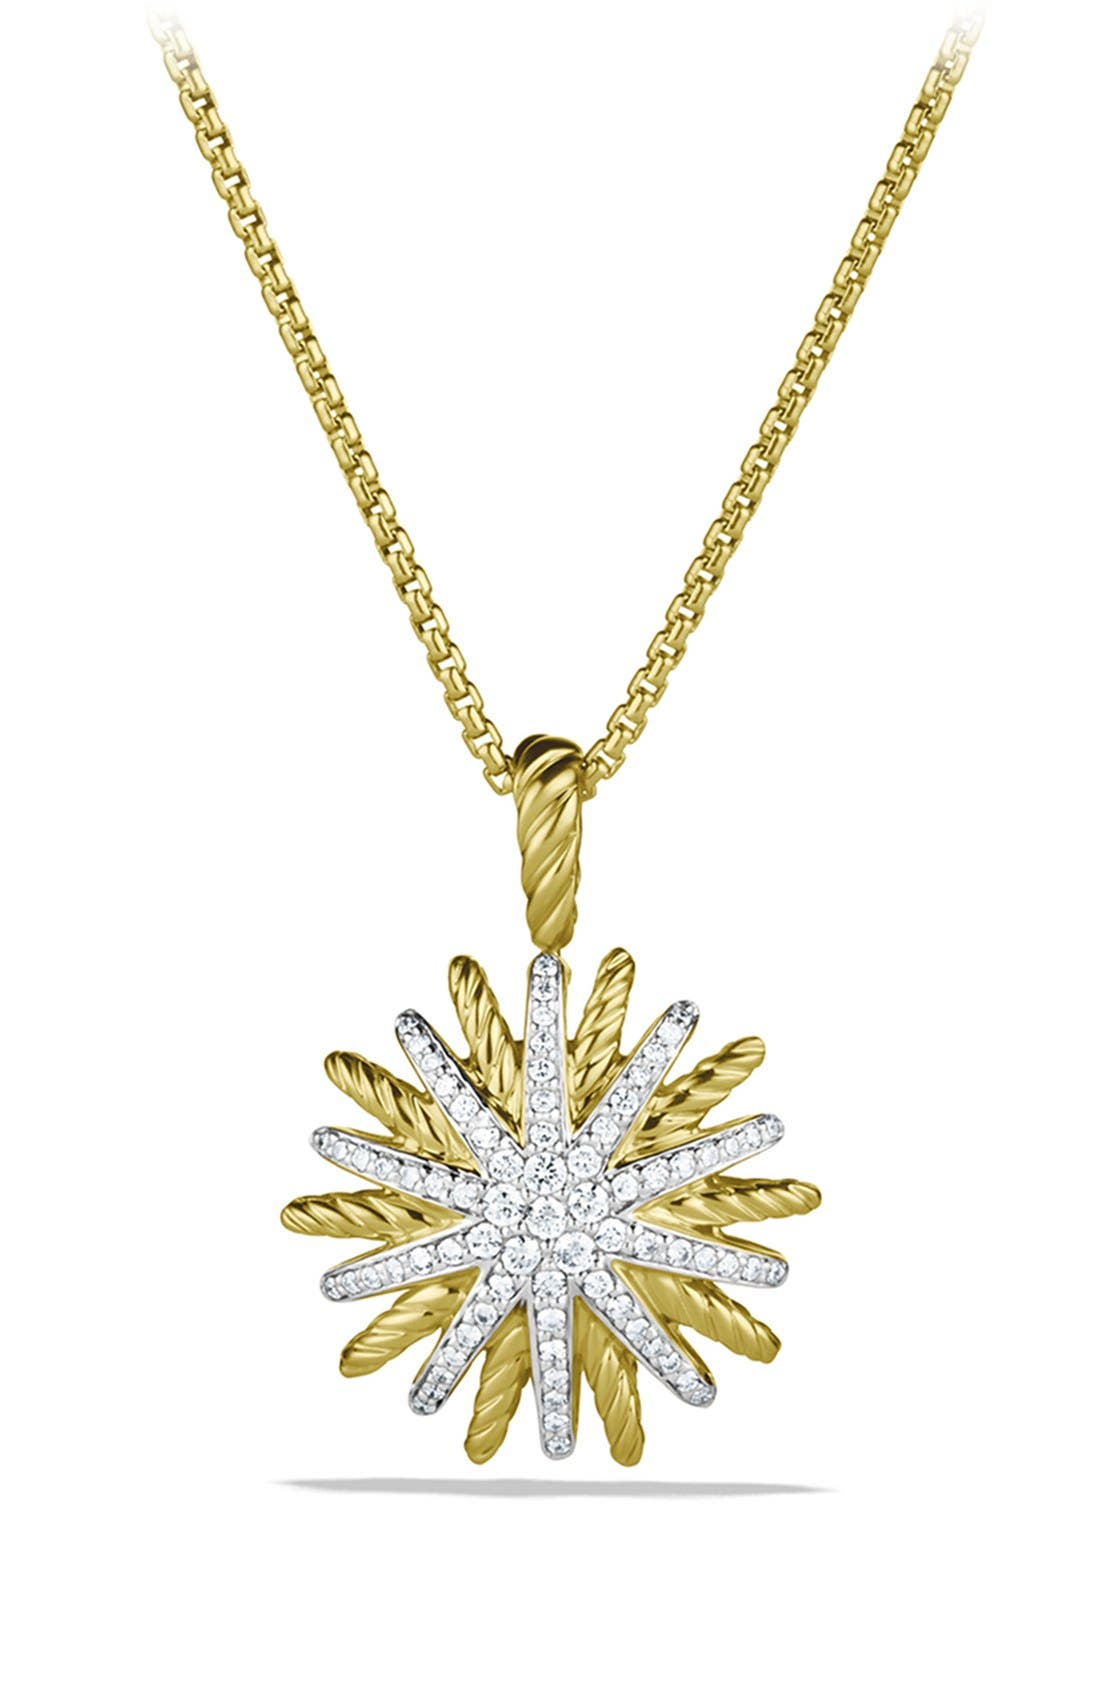 Main Image - David Yurman 'Starburst' Small Pendant with Diamonds in Gold on Chain